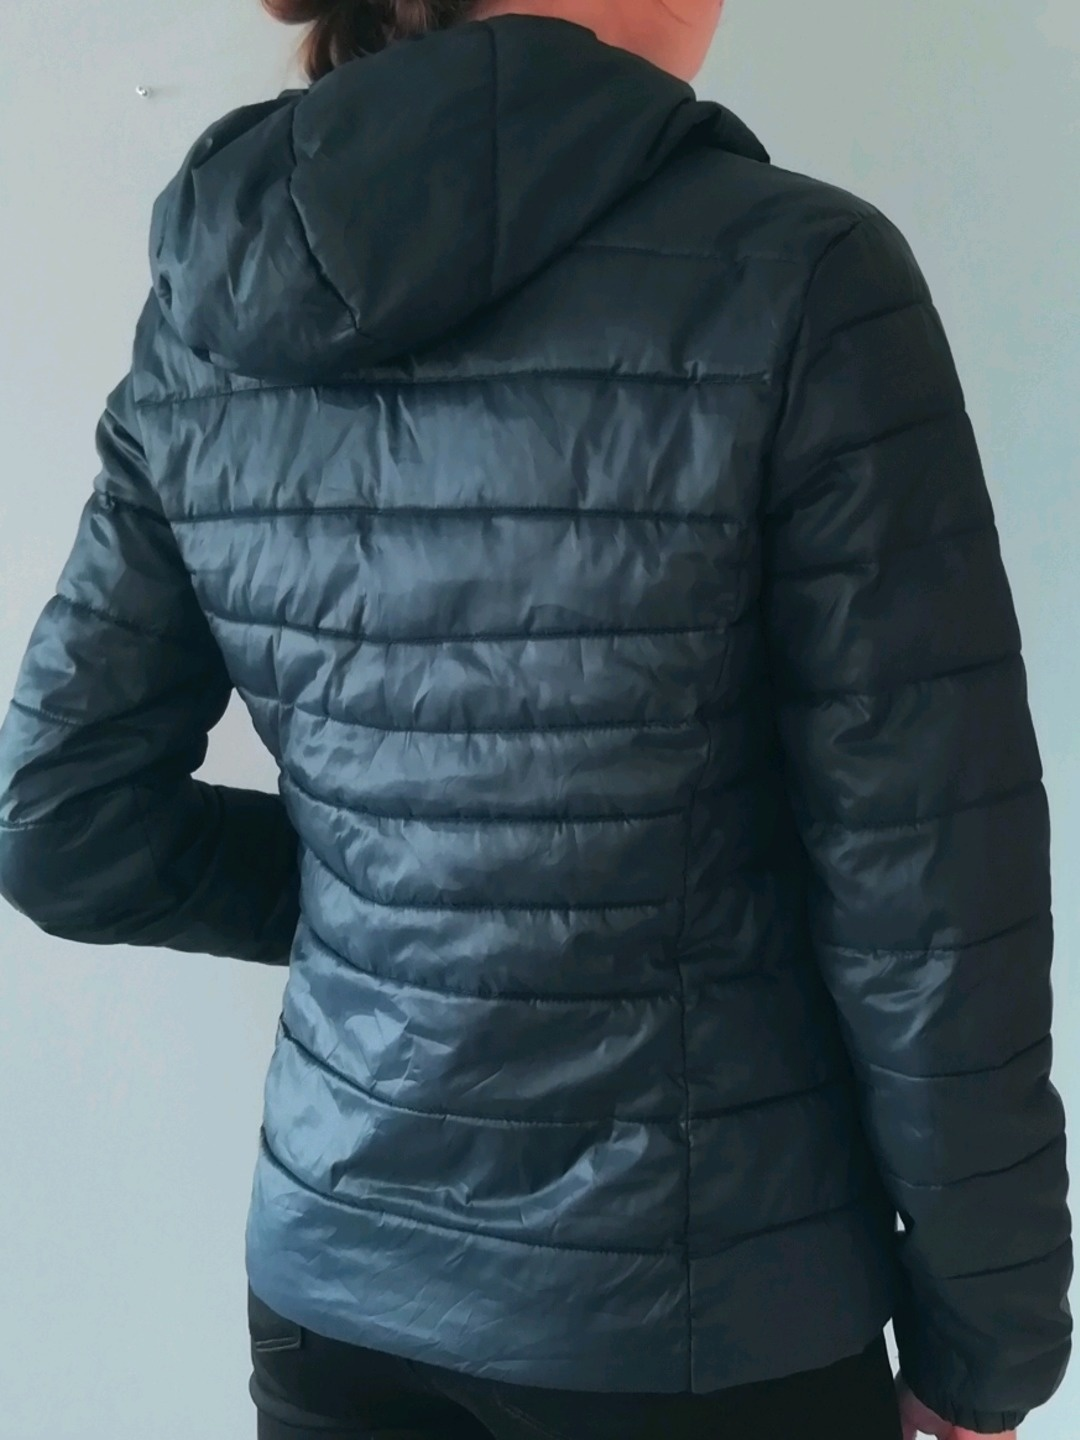 Women's coats & jackets - ONLY BLUE PREMIUM photo 2